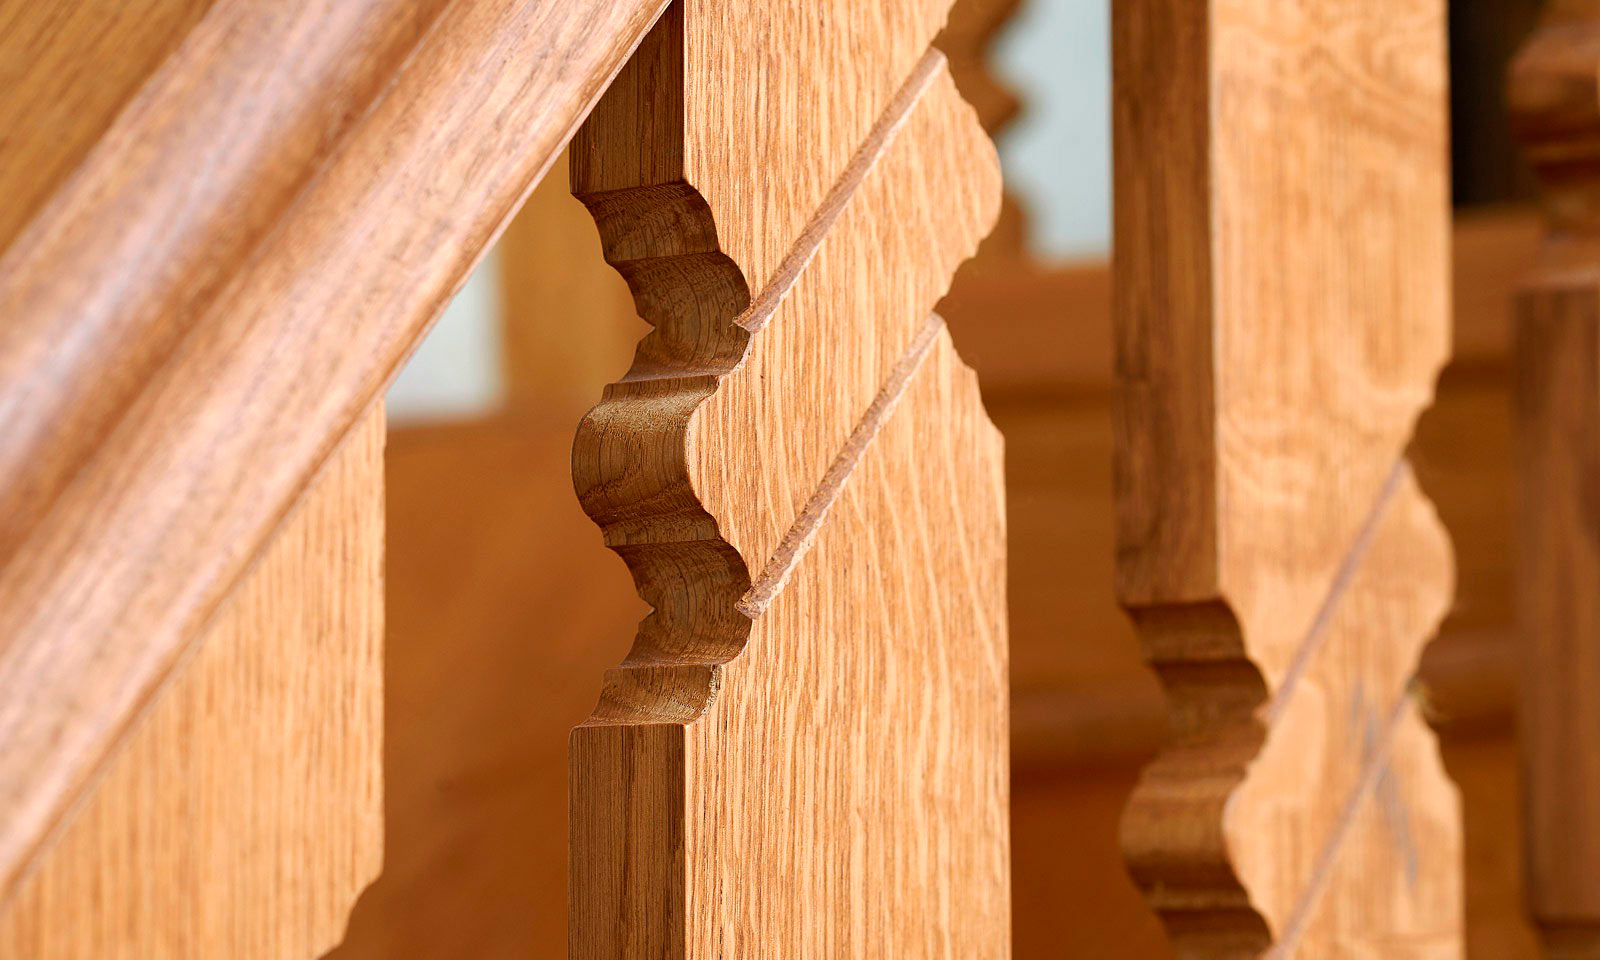 Gothic Staircase. Bespoke, custom made, hand-crafted, stairs, made using traditional wood-working techniques and manufactured from solid European oak. Bespoke custom made joinery from Mounts Hill.